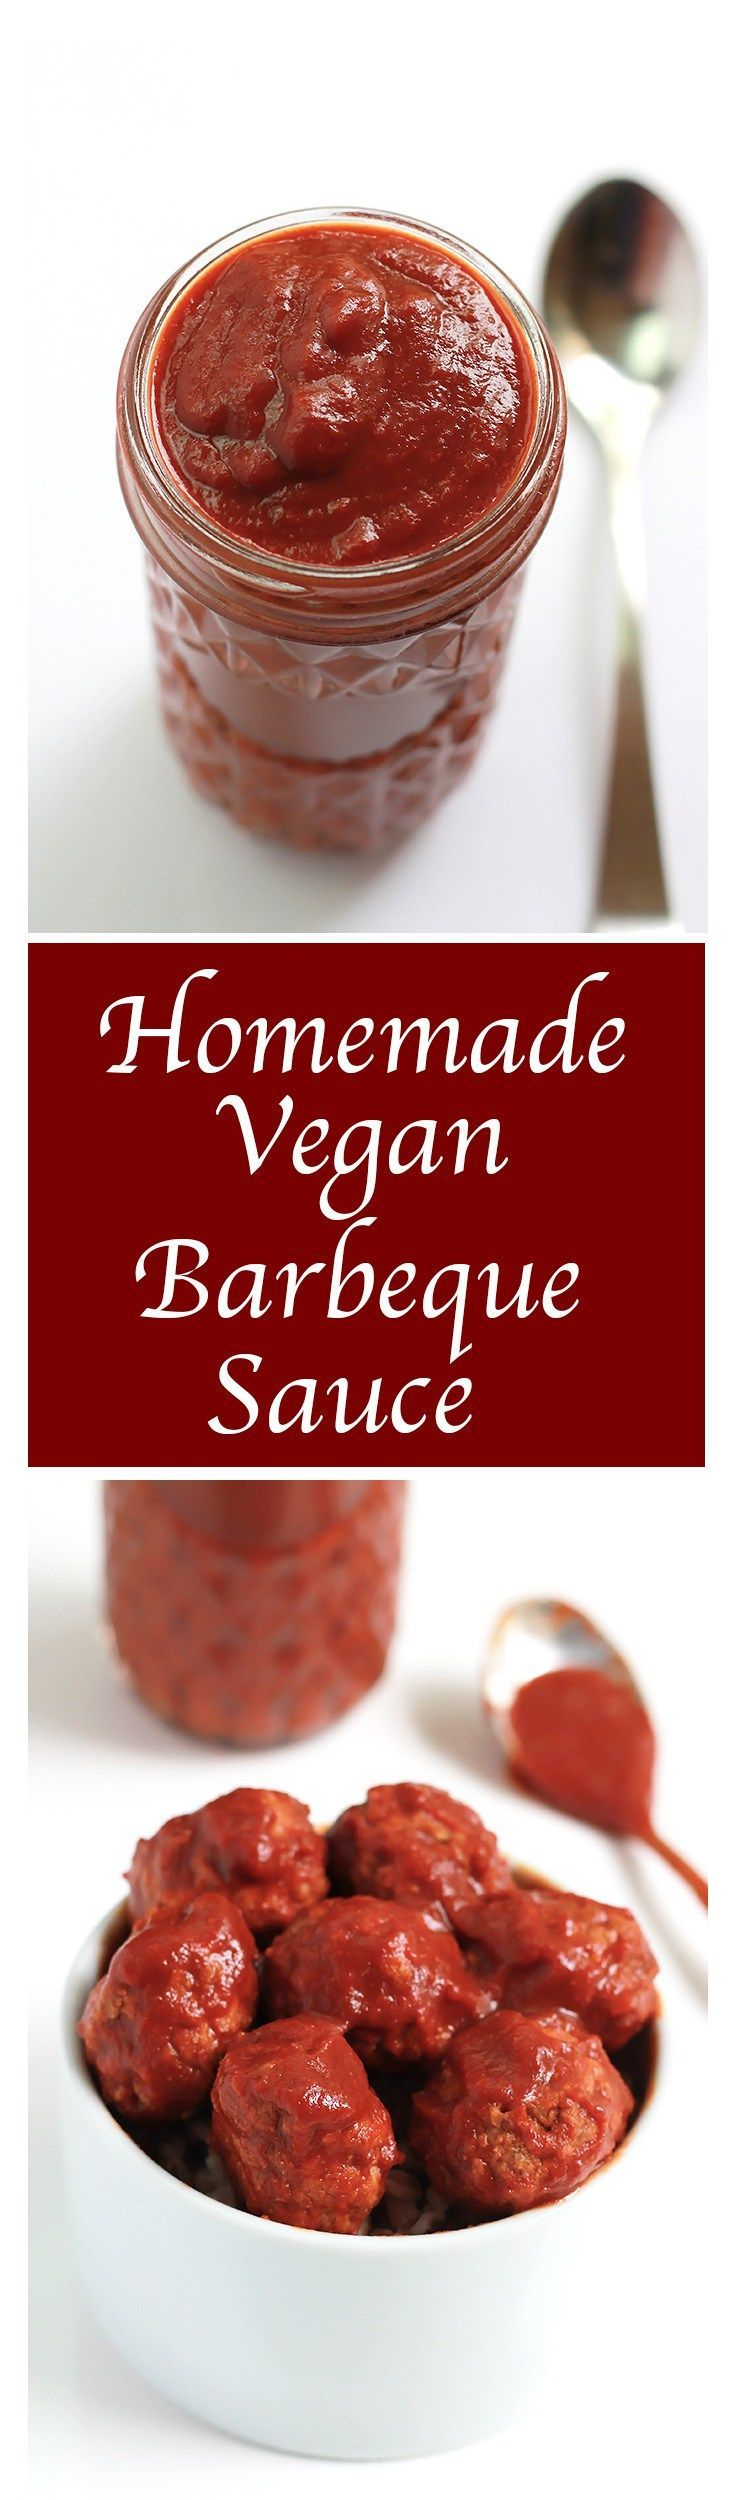 Thick, tangy and sweet with a little bit of smoky is the best way to describe this Homemade Vegan Barbeque Sauce, and just in time for the upcoming grilling season.